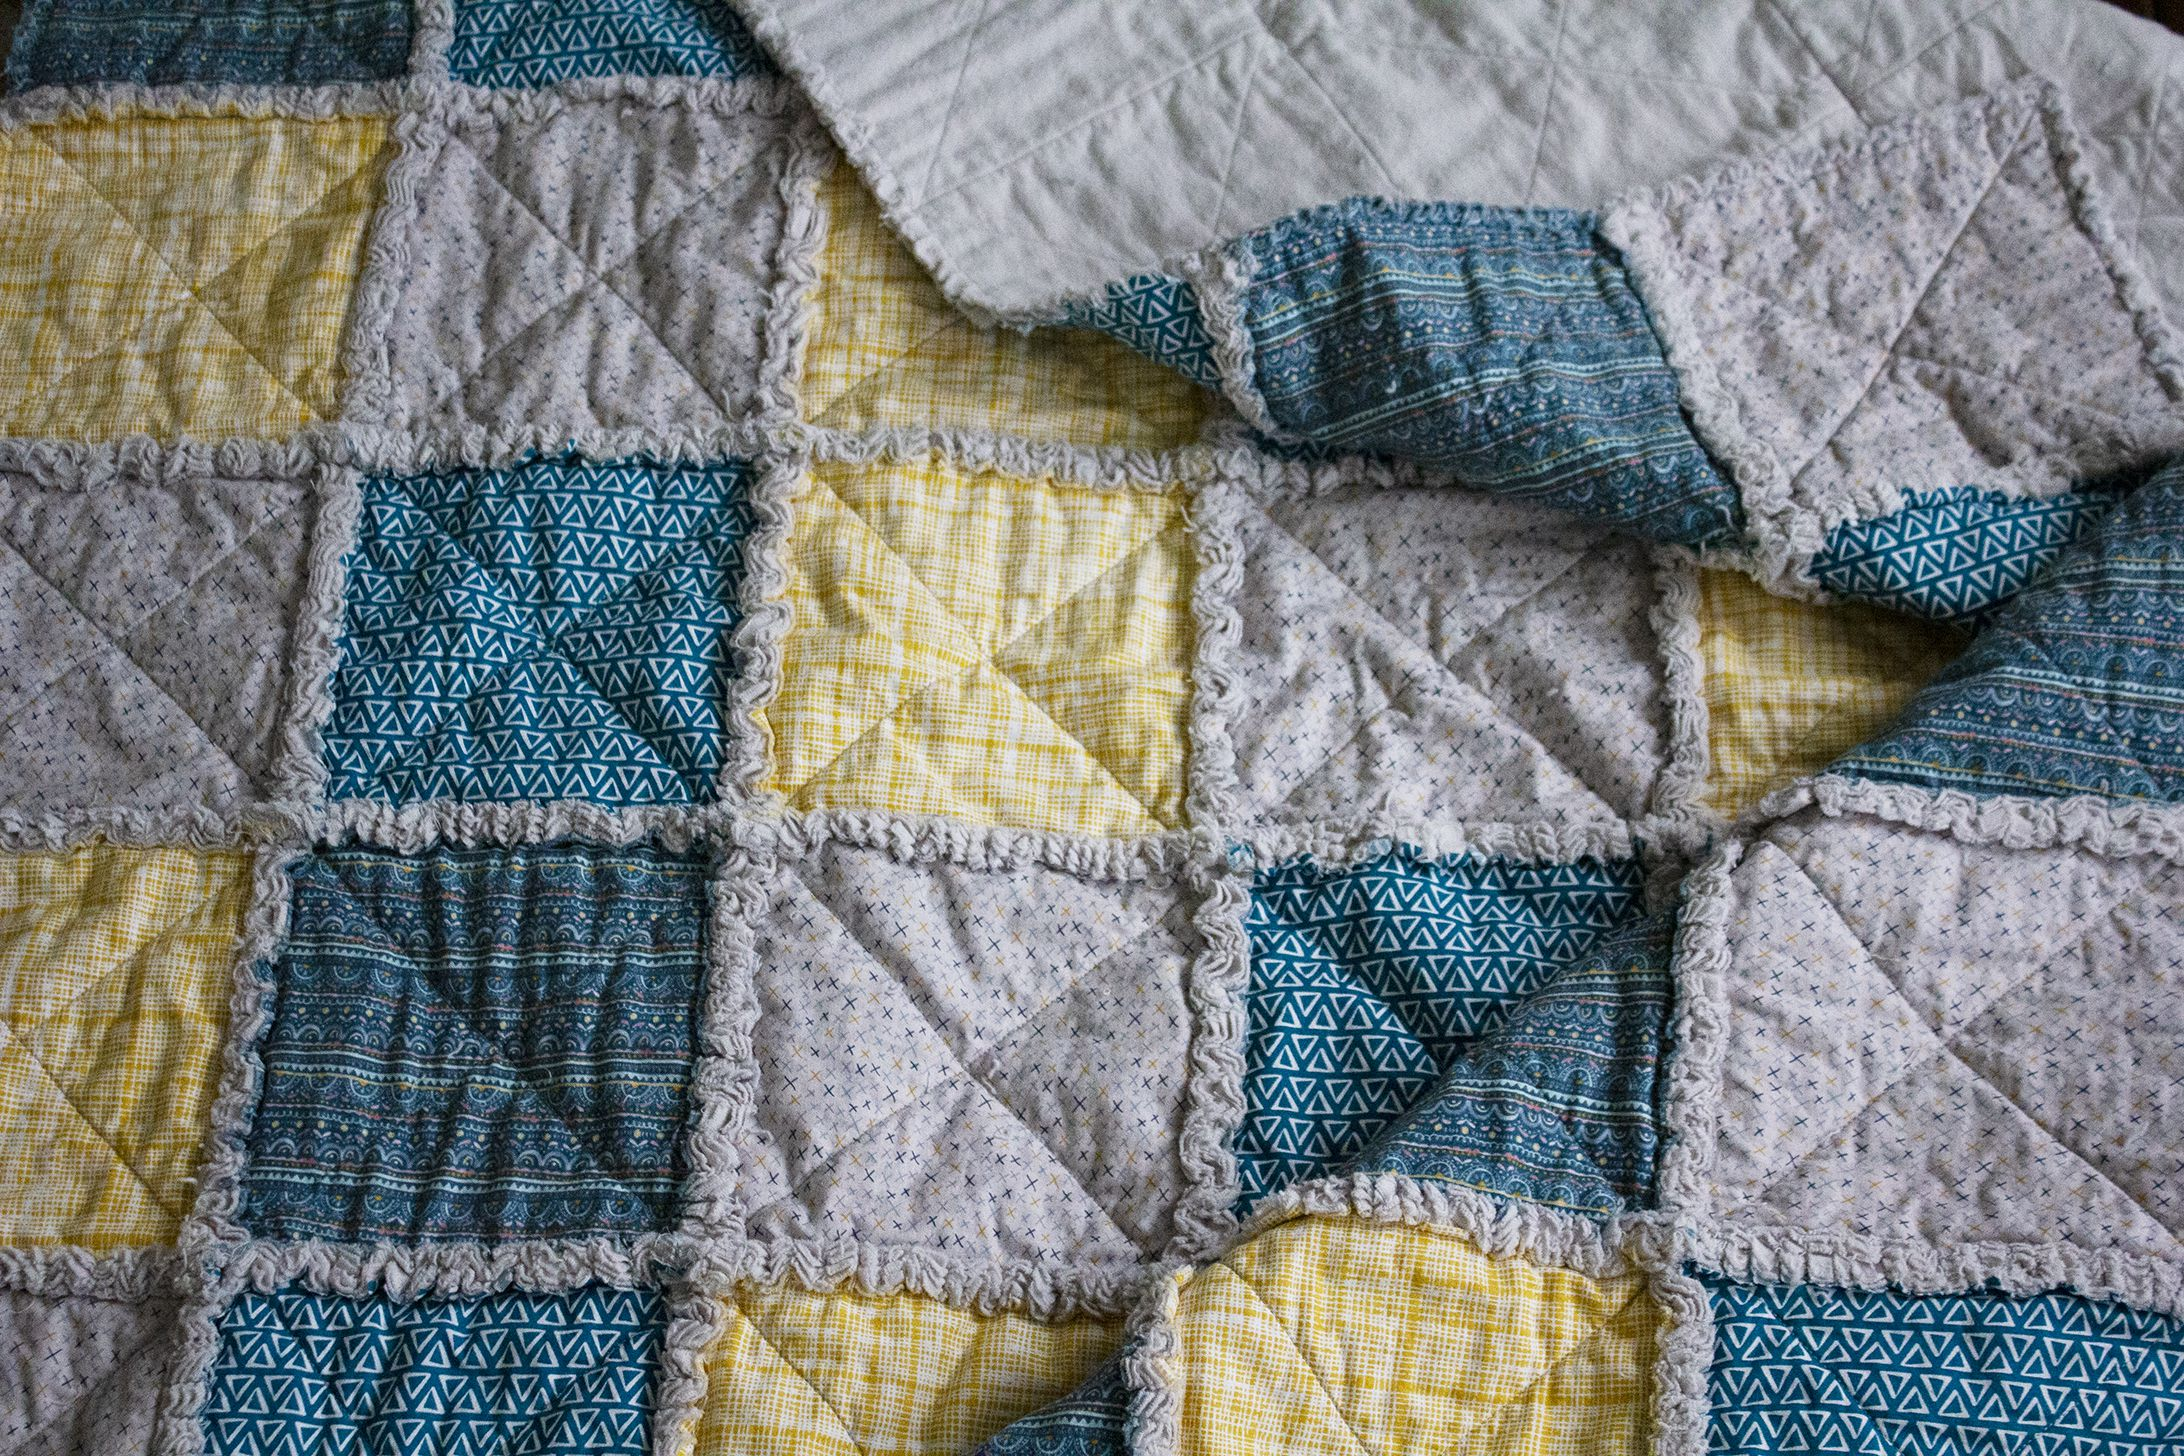 A close-up of the rag quilt after washing